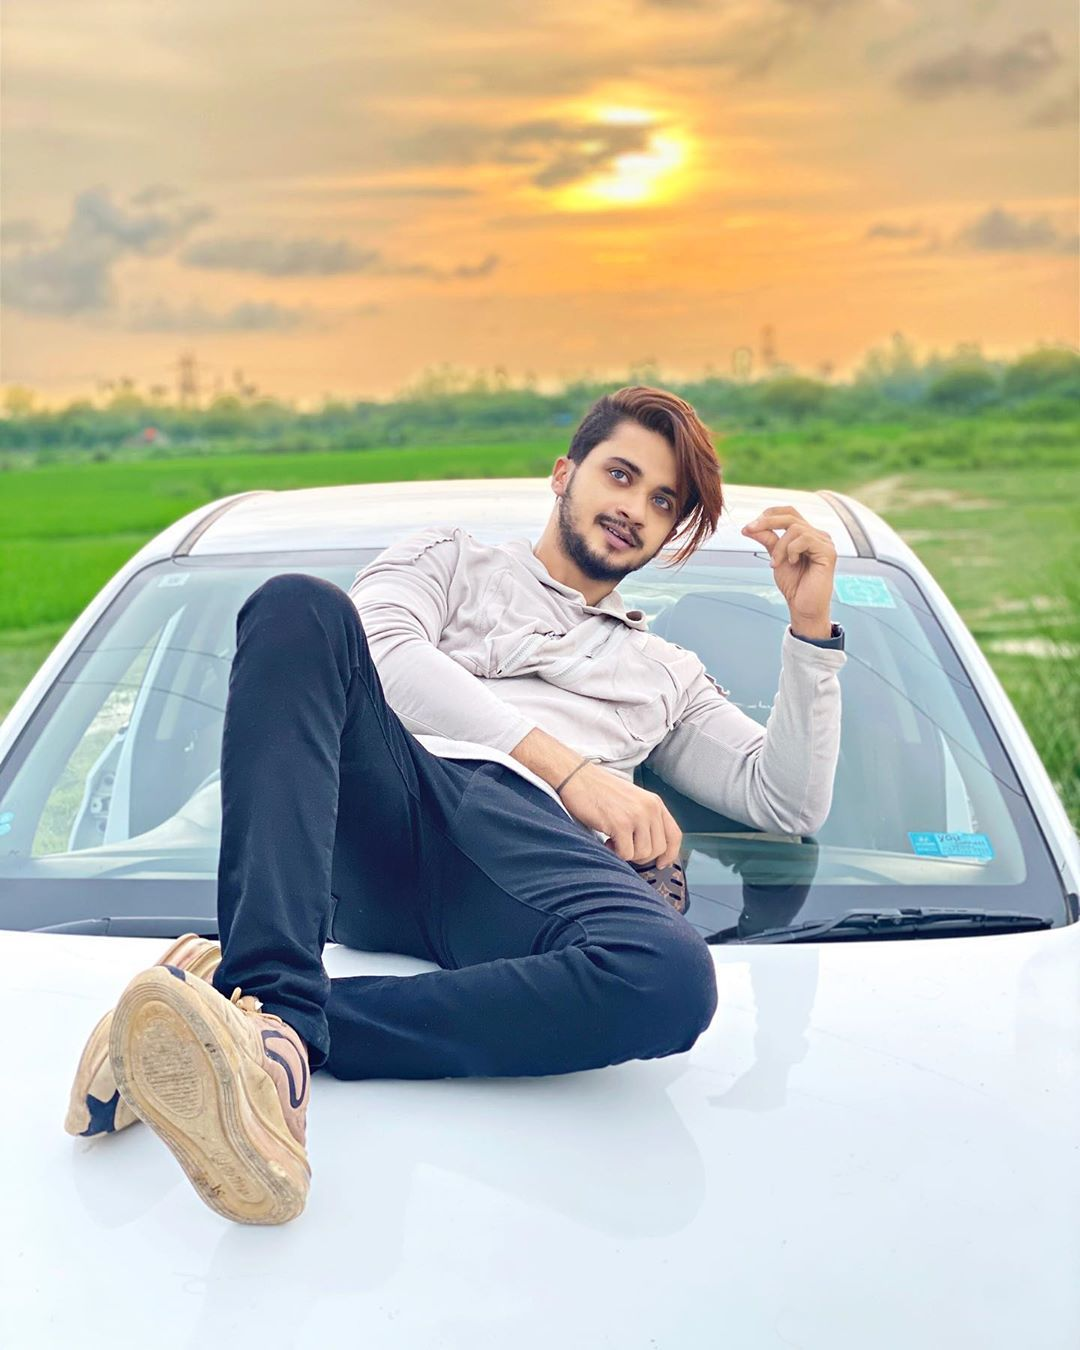 White Car With Hasnain In 2020 Photoshoot Pose Boy Cute Boy Photo Photoshoot Poses